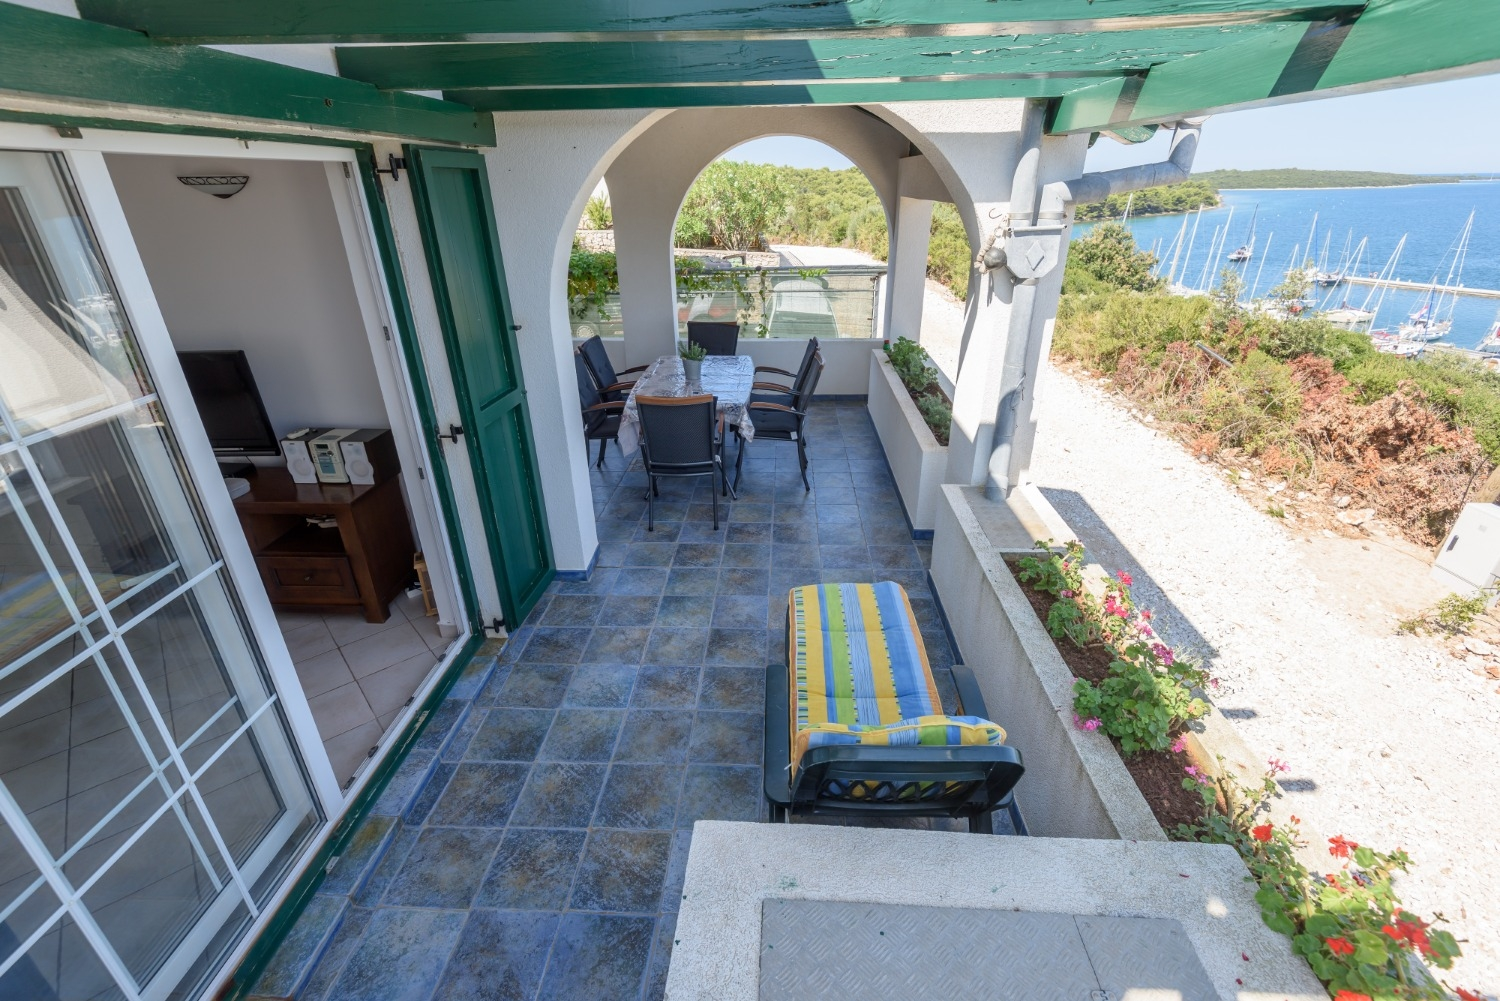 Holiday Home near lighthouse - Veli Rat - Vakantiehuizen, villa´s Kroatië